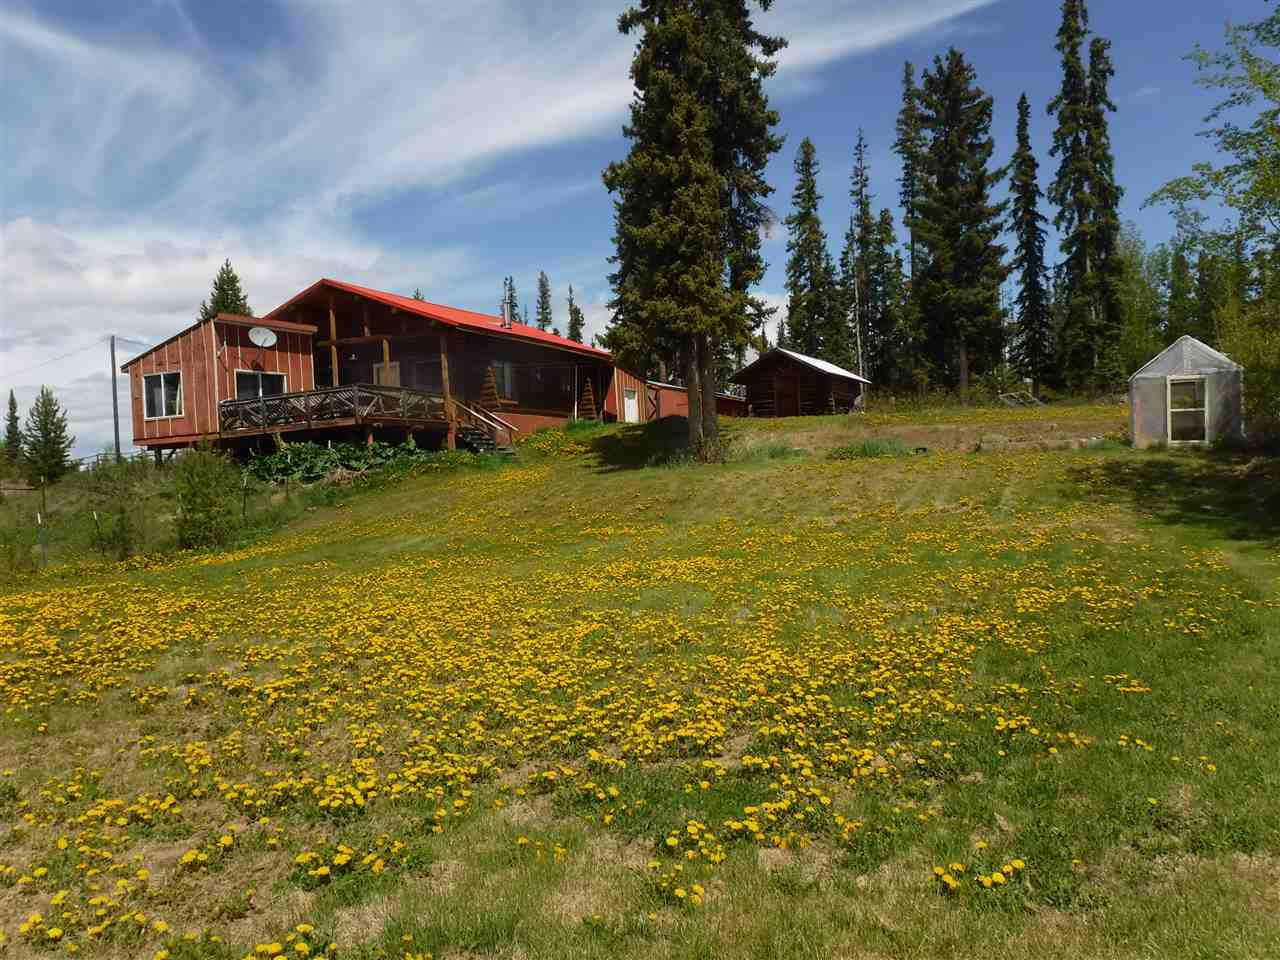 Photo 4: Photos: 2751 REED ROAD in Williams Lake: Williams Lake - Rural West House for sale (Williams Lake (Zone 27))  : MLS®# R2460768